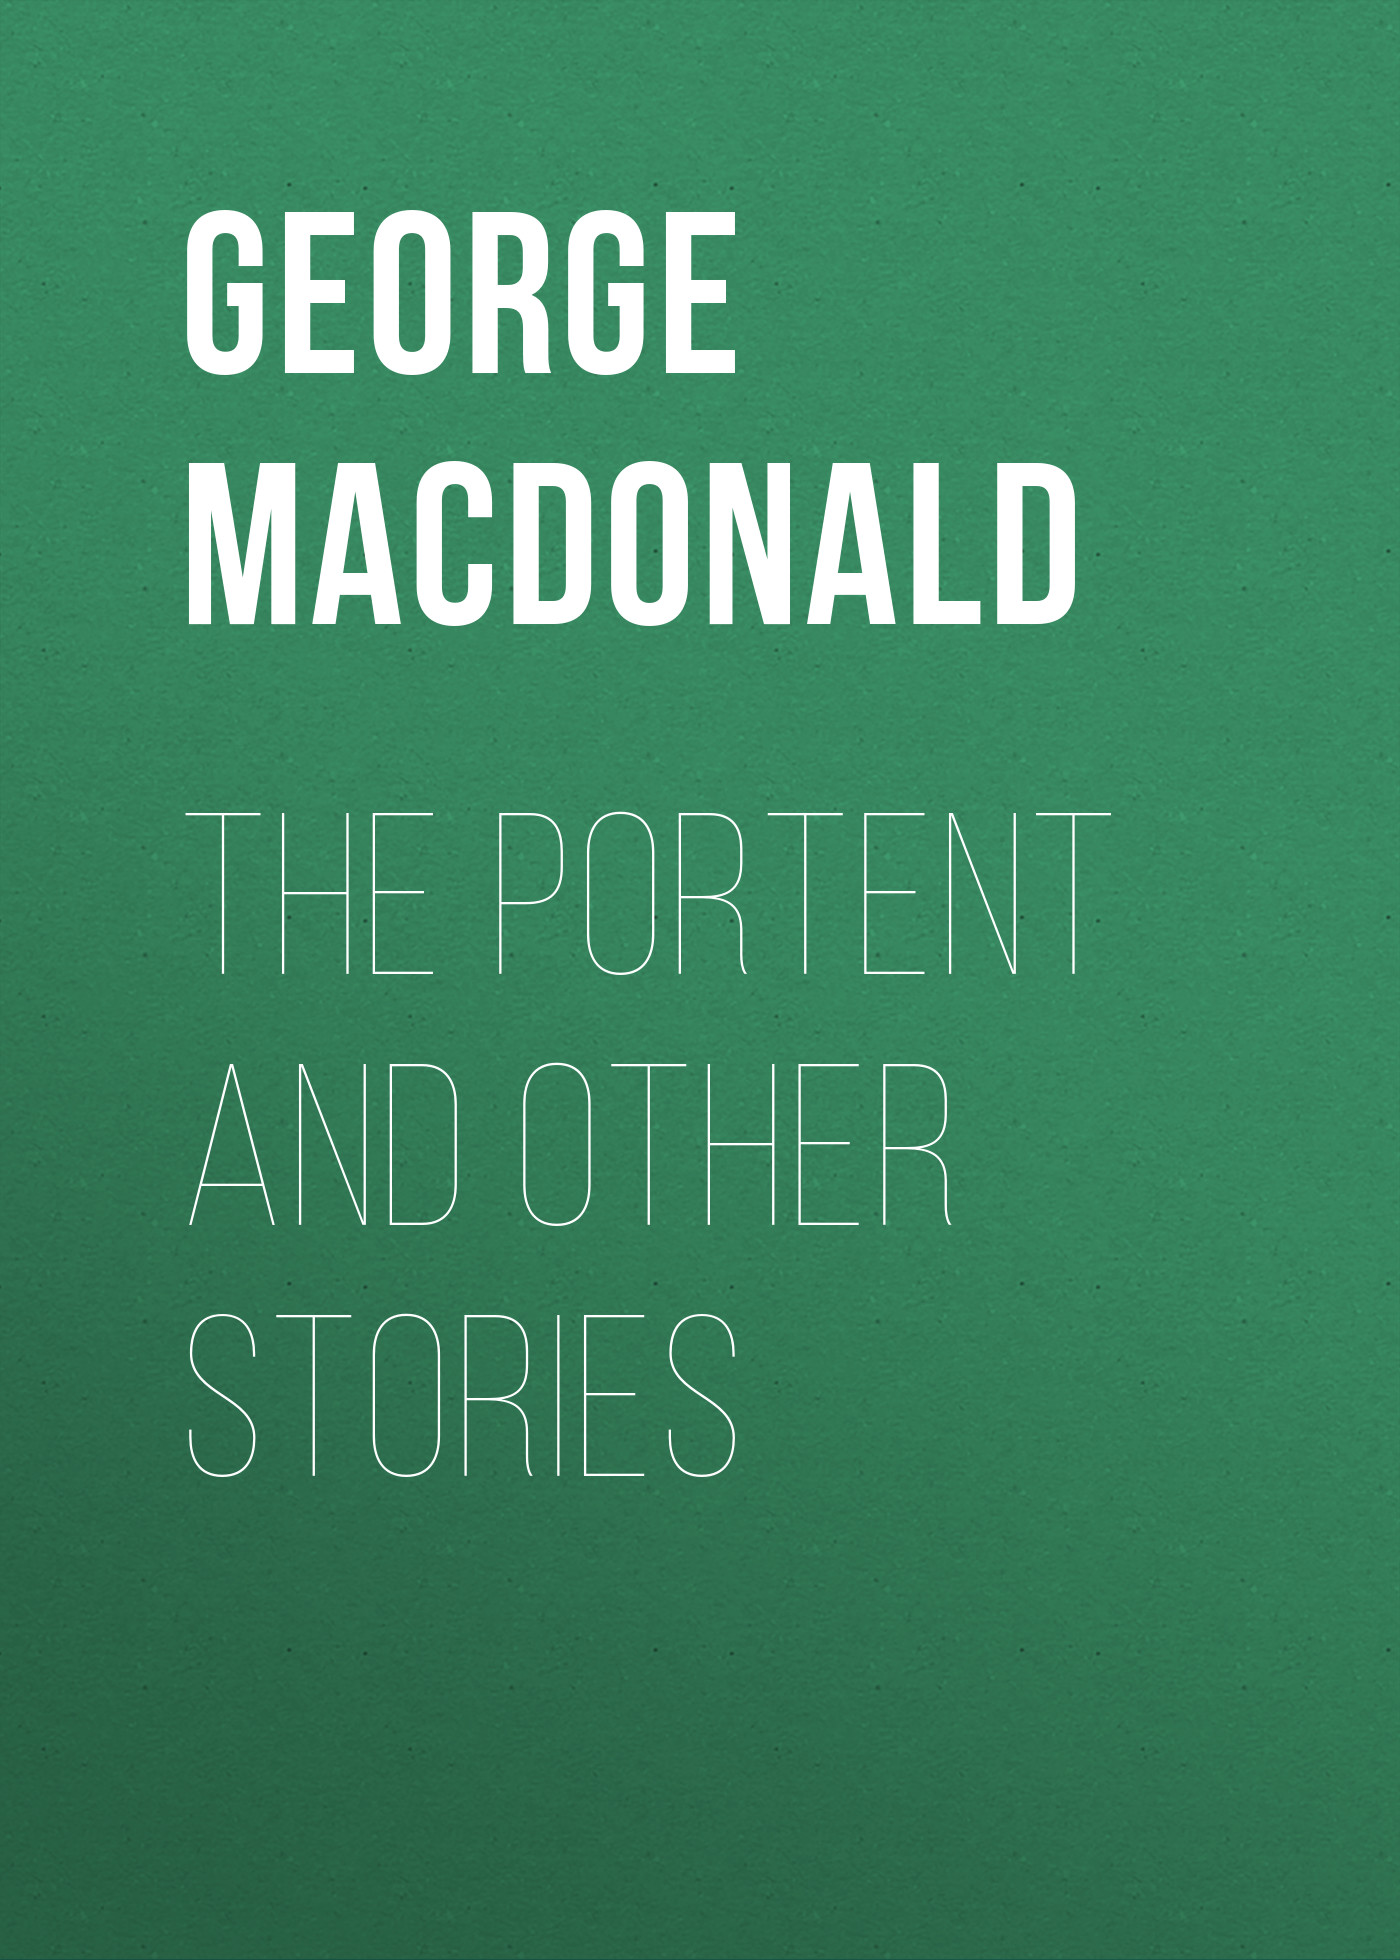 George MacDonald The Portent and Other Stories oxley james macdonald my strange rescue and other stories of sport and adventure in canada